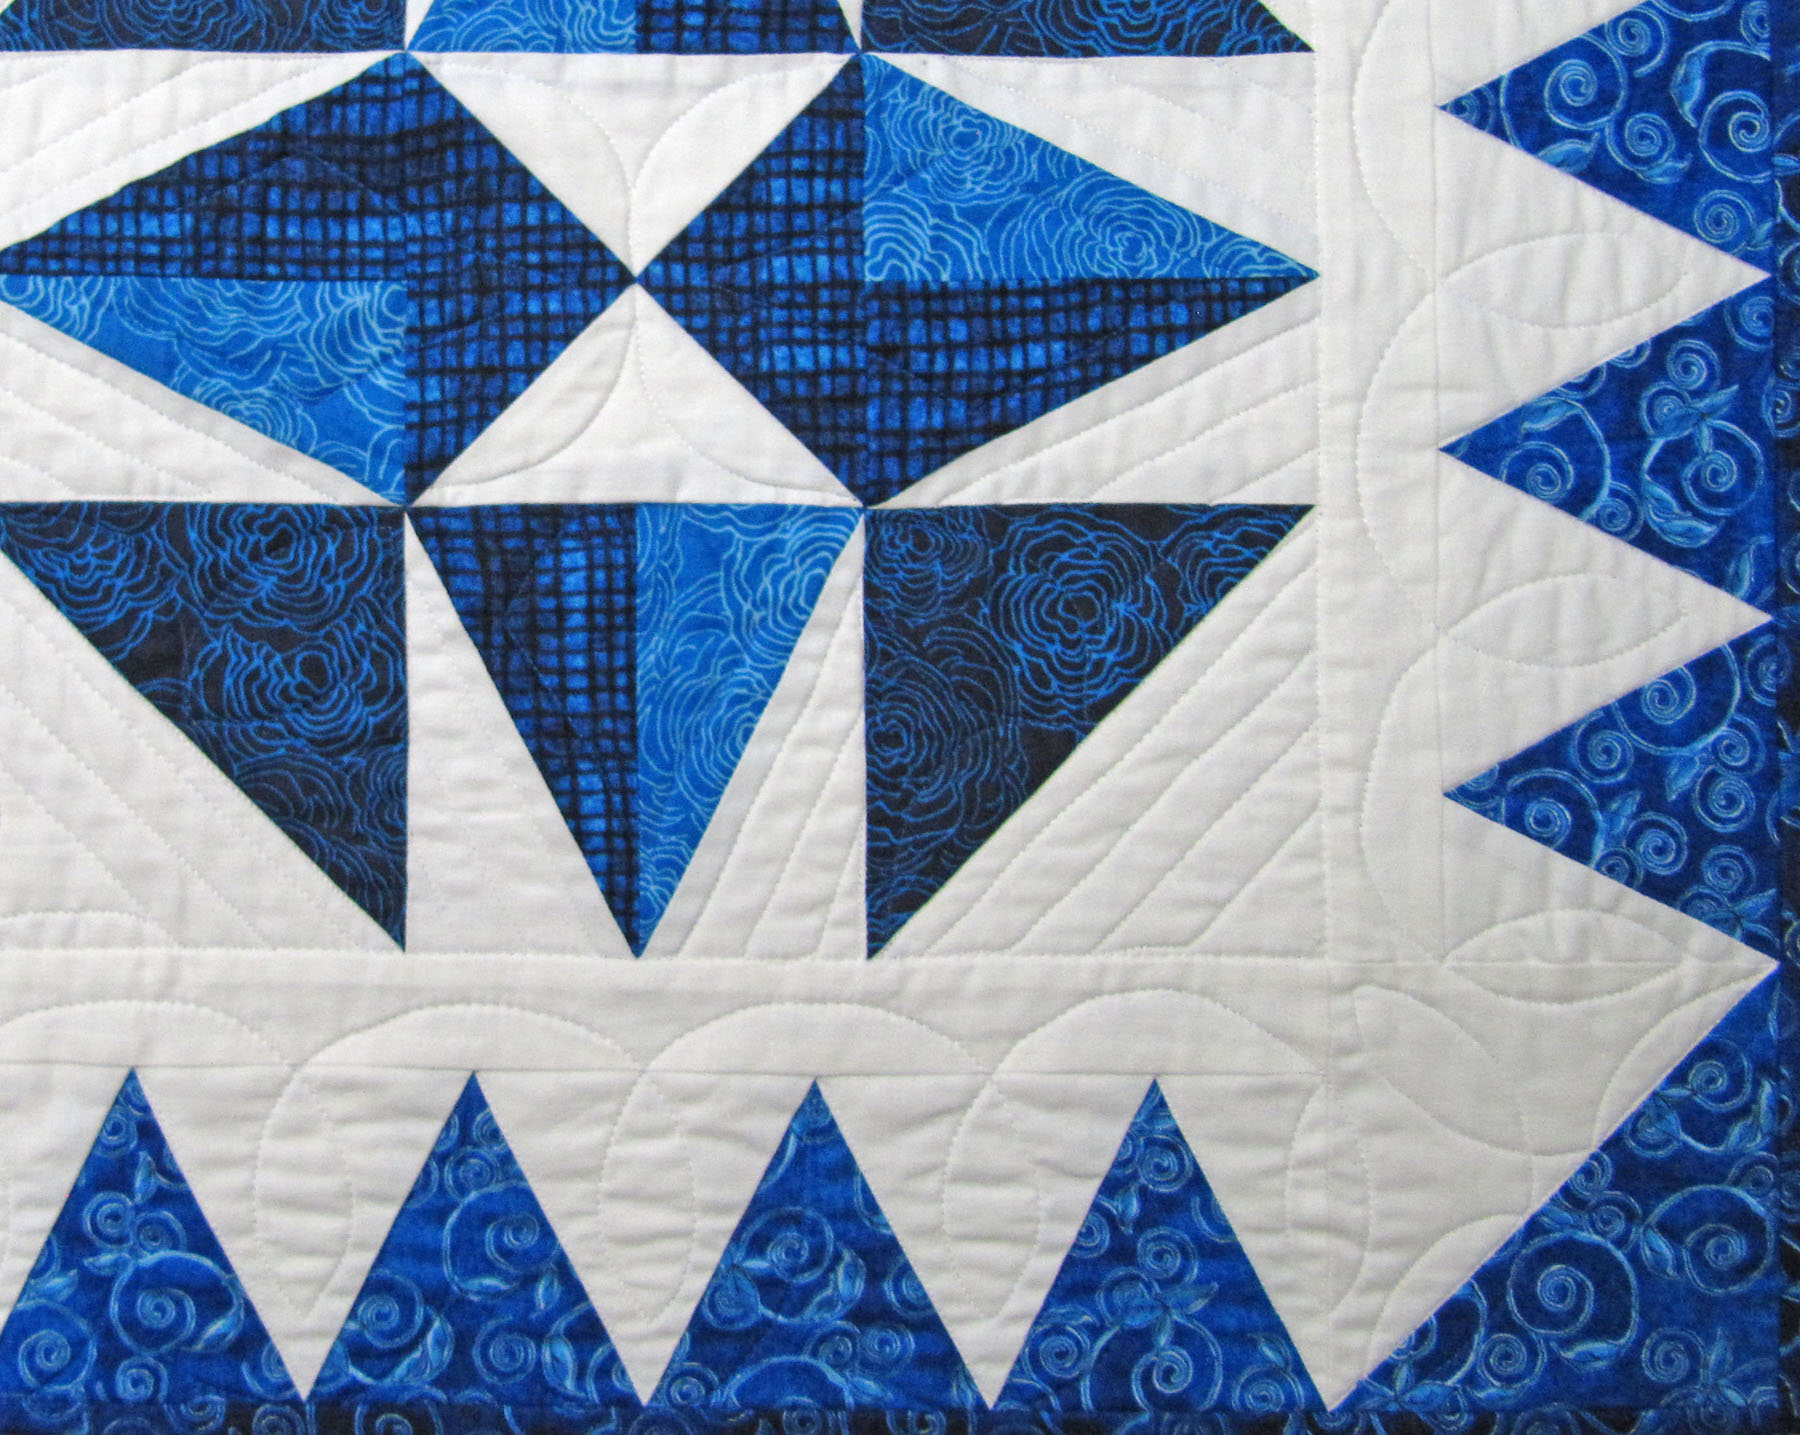 Nancy's Quilting Classroom: Choosing Quilting Designs, Part 3 ... : quilting border designs free - Adamdwight.com